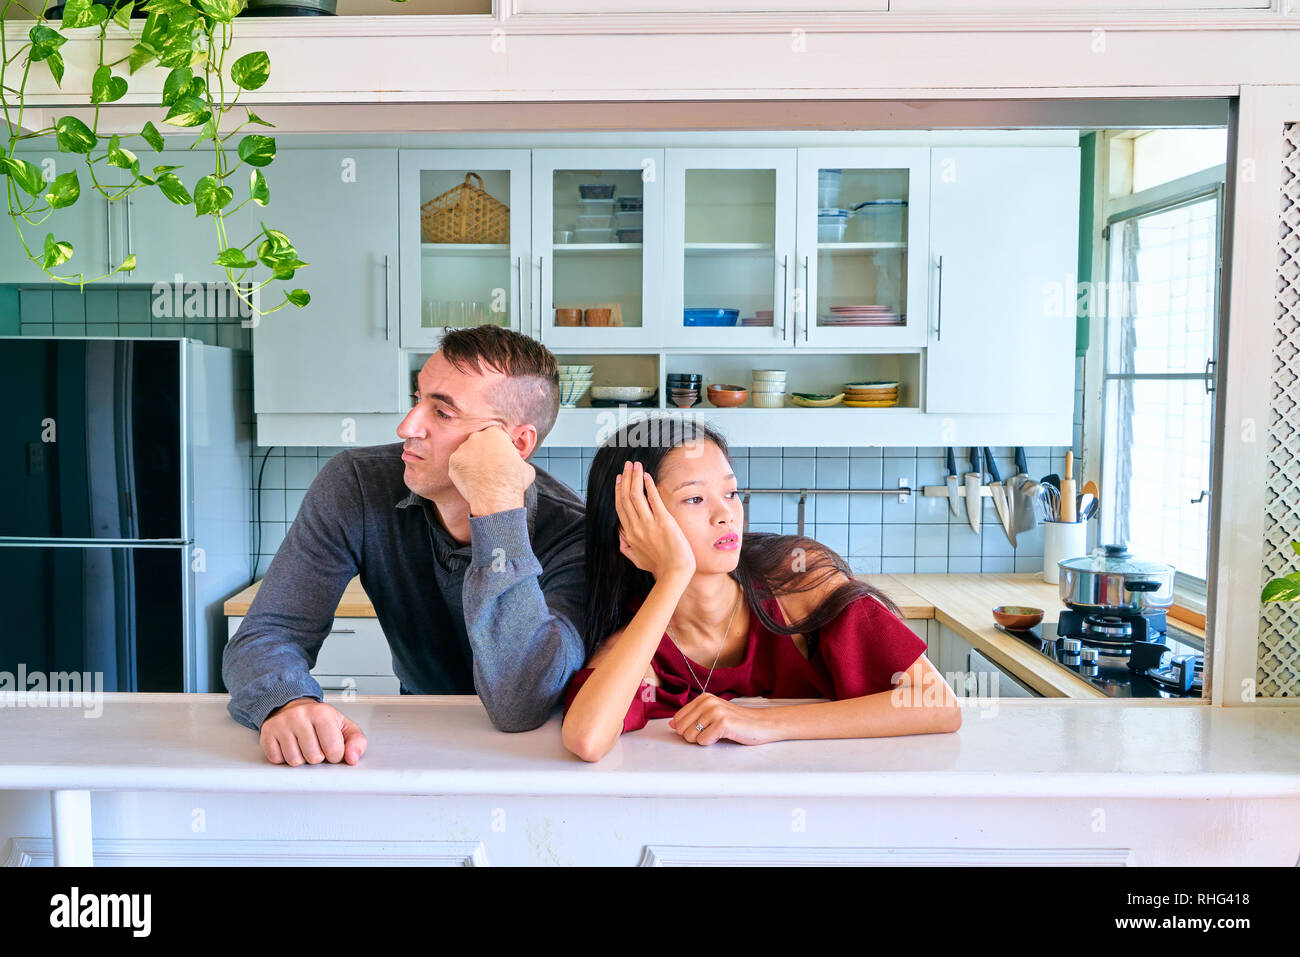 Lovely couple posing - ignoring each other and looking away - Stock Image